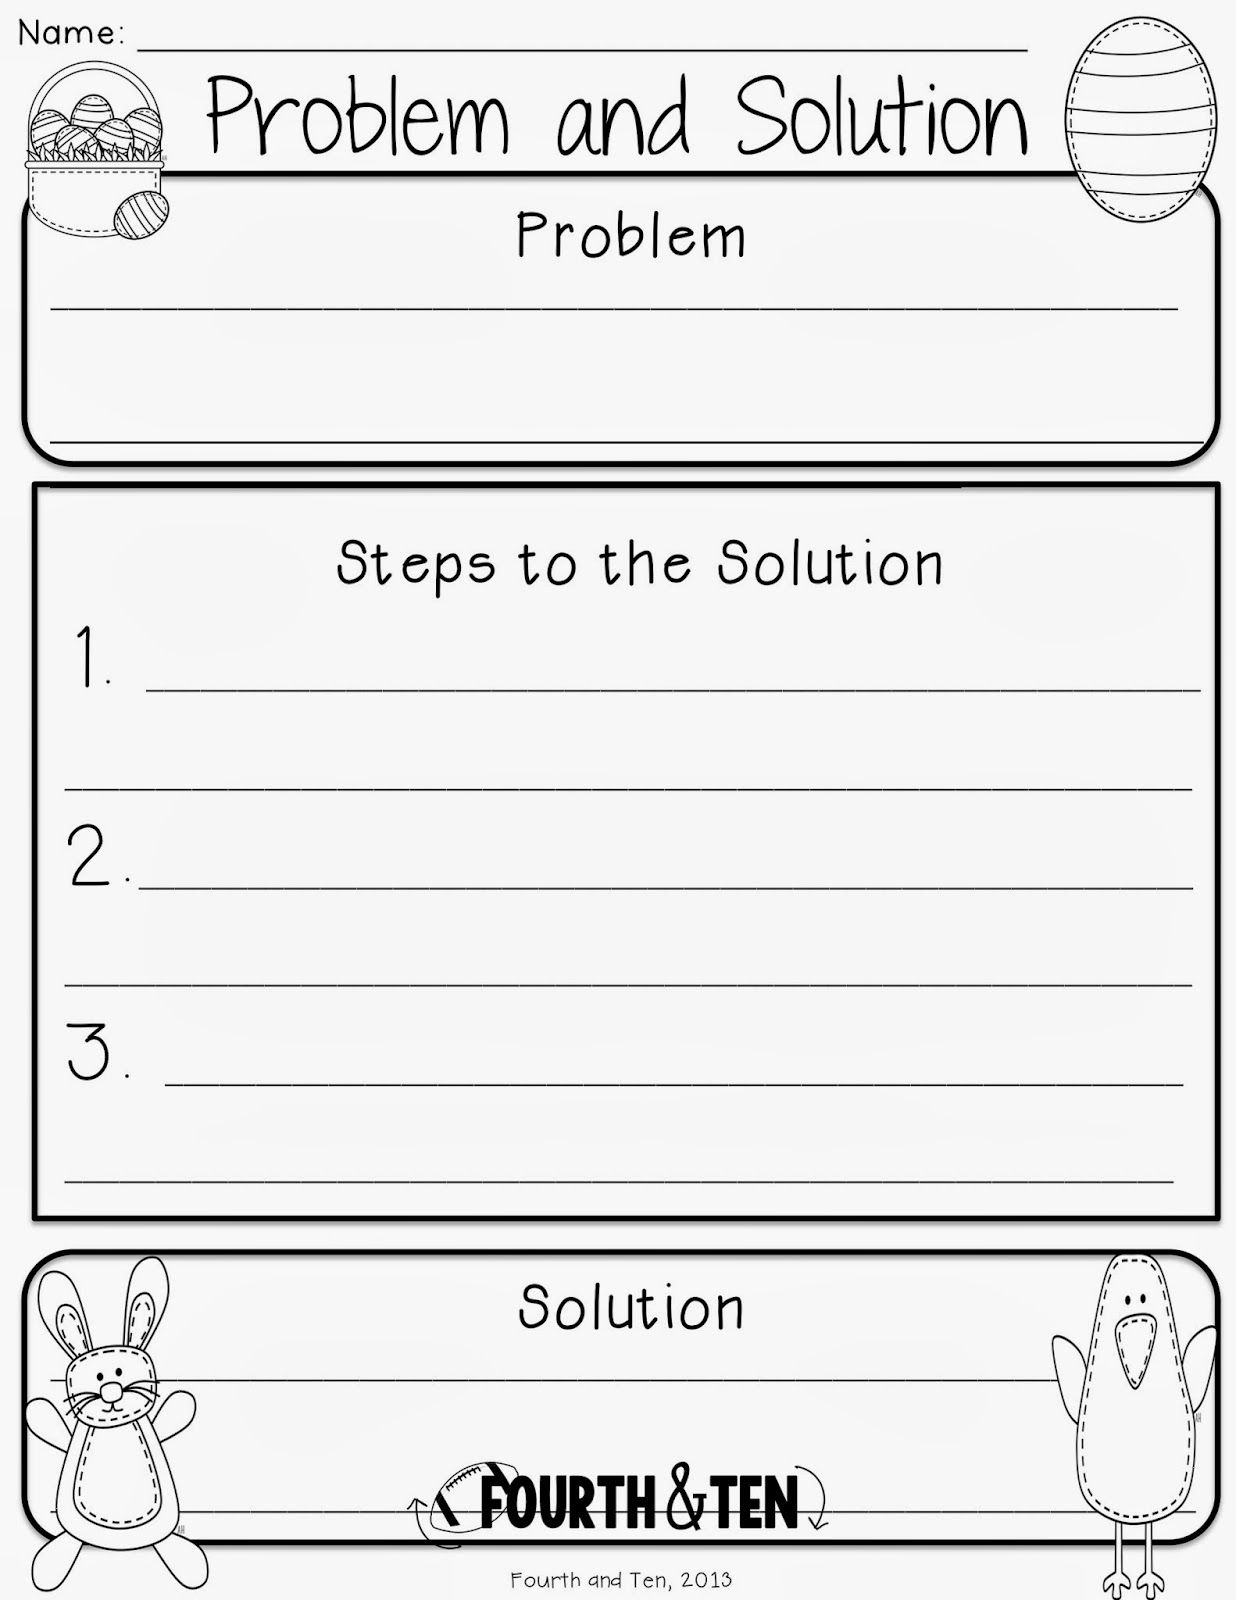 easter graphic organizers - reading/writing - problem & solution